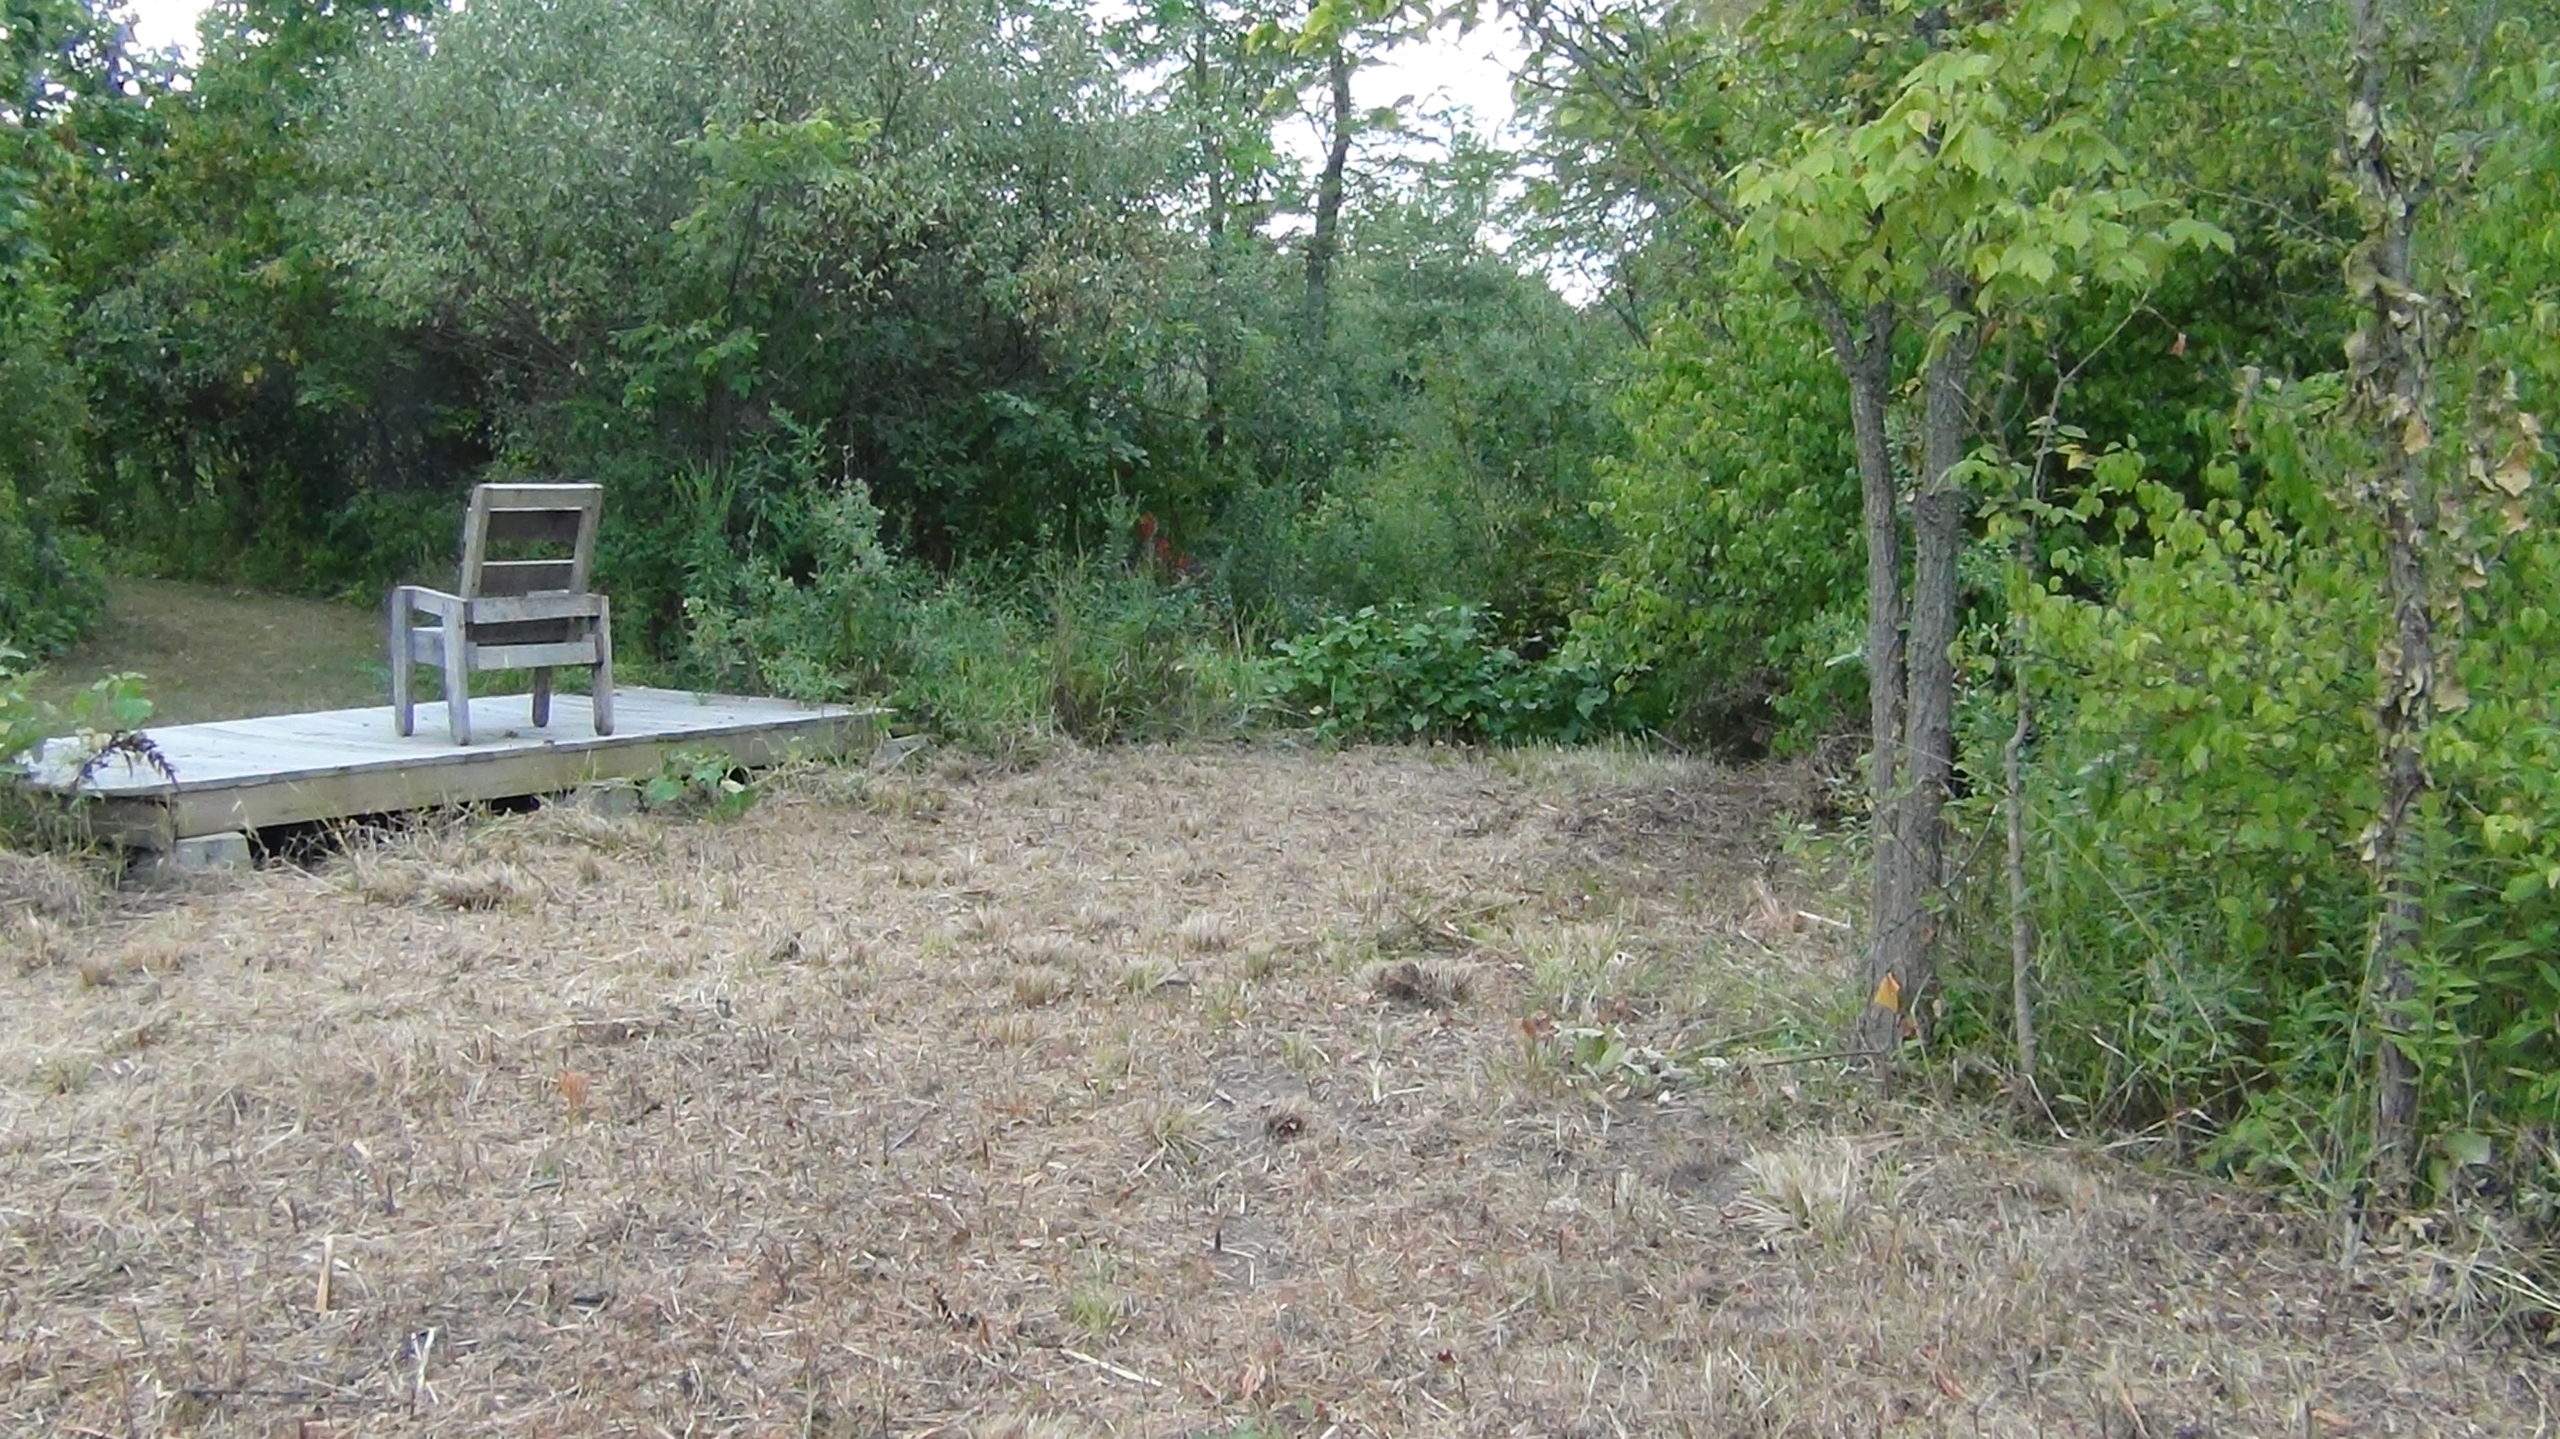 A bench sits on a platform, facing away from the vernal pool area.